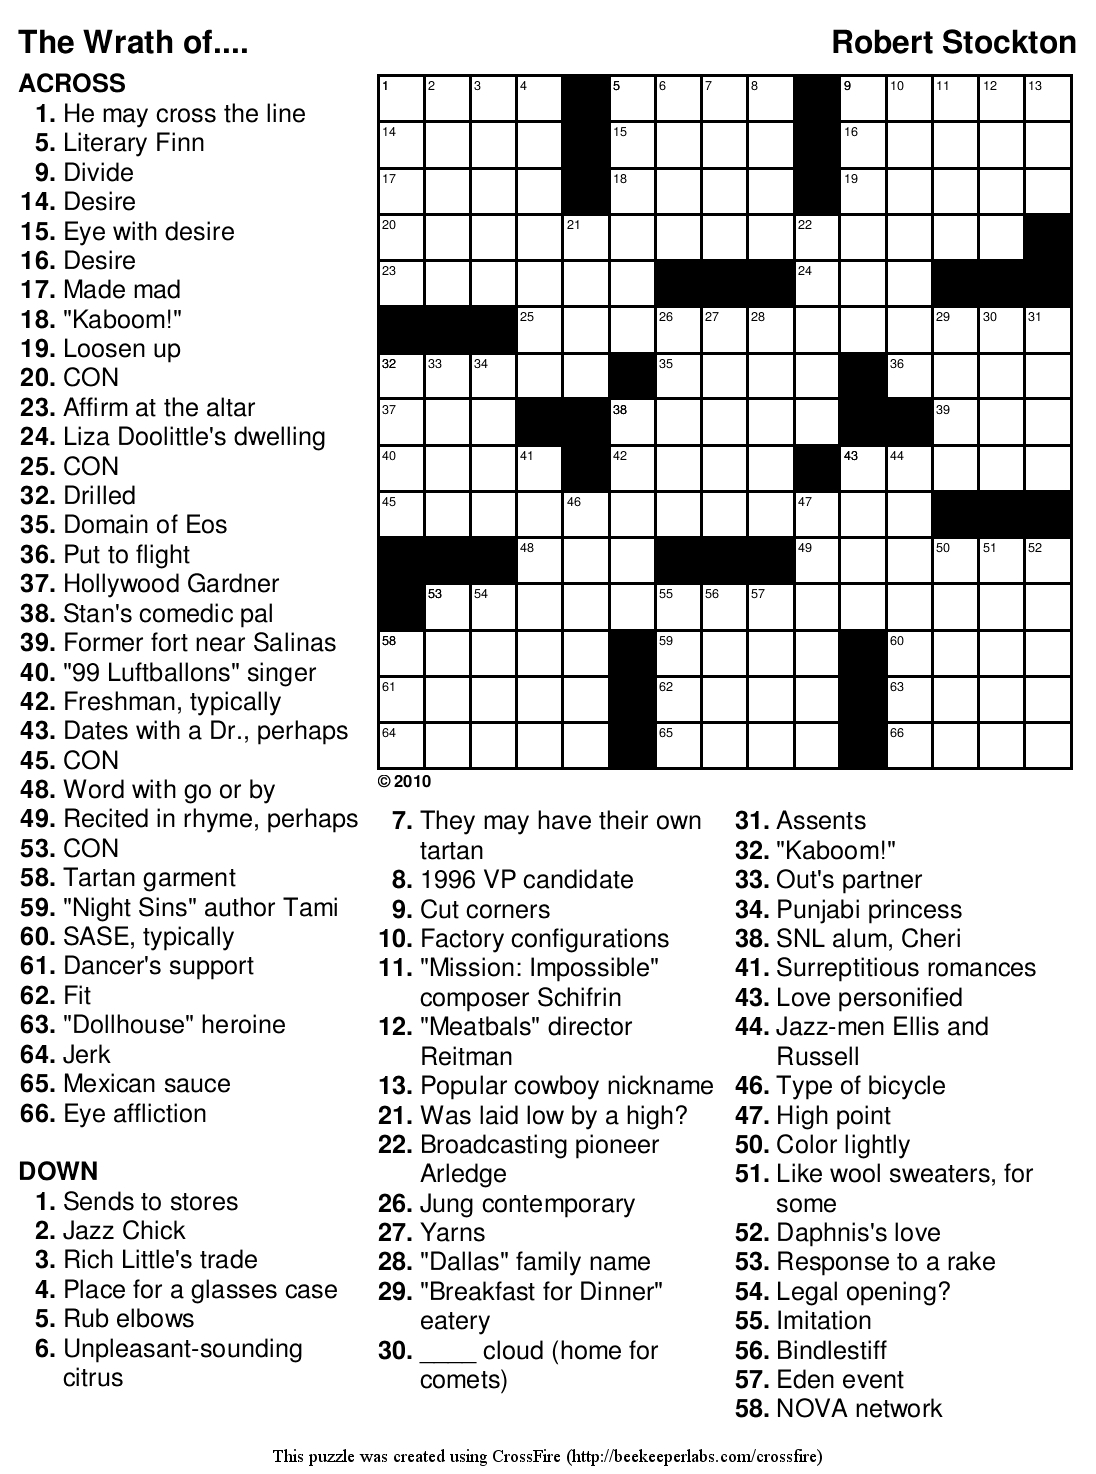 Free Printable Large Print Crossword Puzzles | M3U8 - Printable Large Crossword